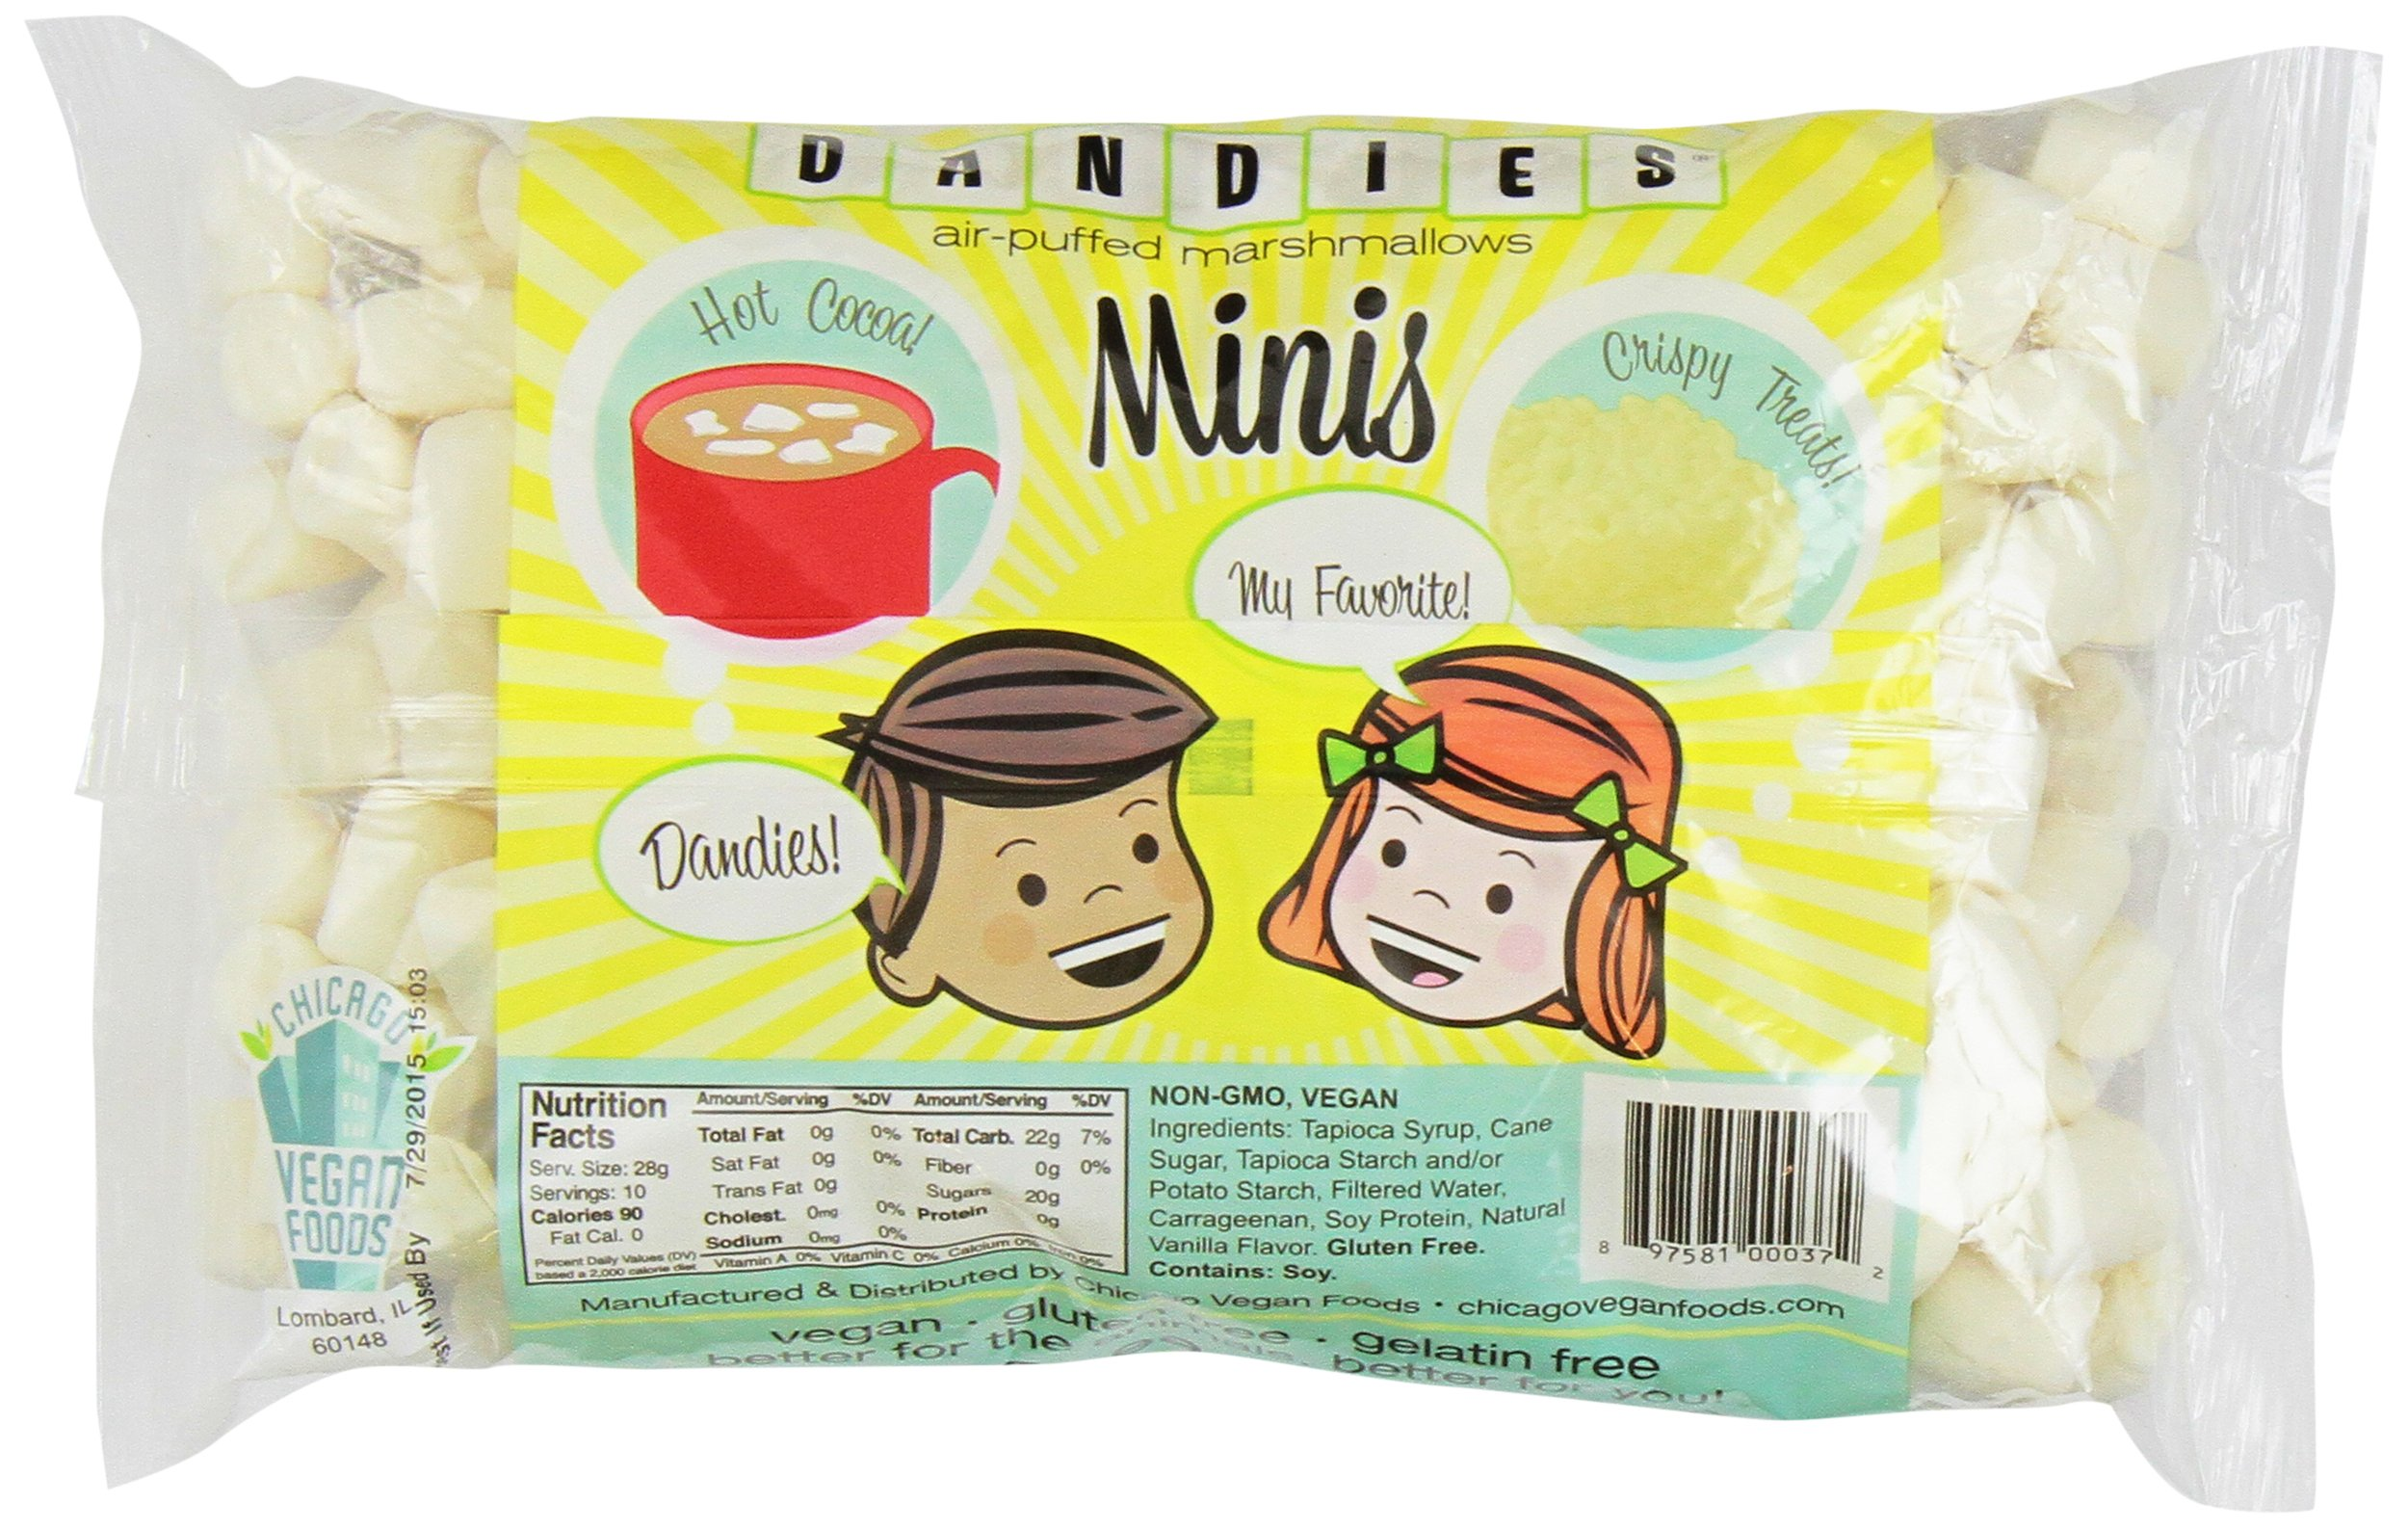 Dandies - Minis - Vegan Marshmallows, Vanilla, 10 Ounce (Pack of 2) by Dandies